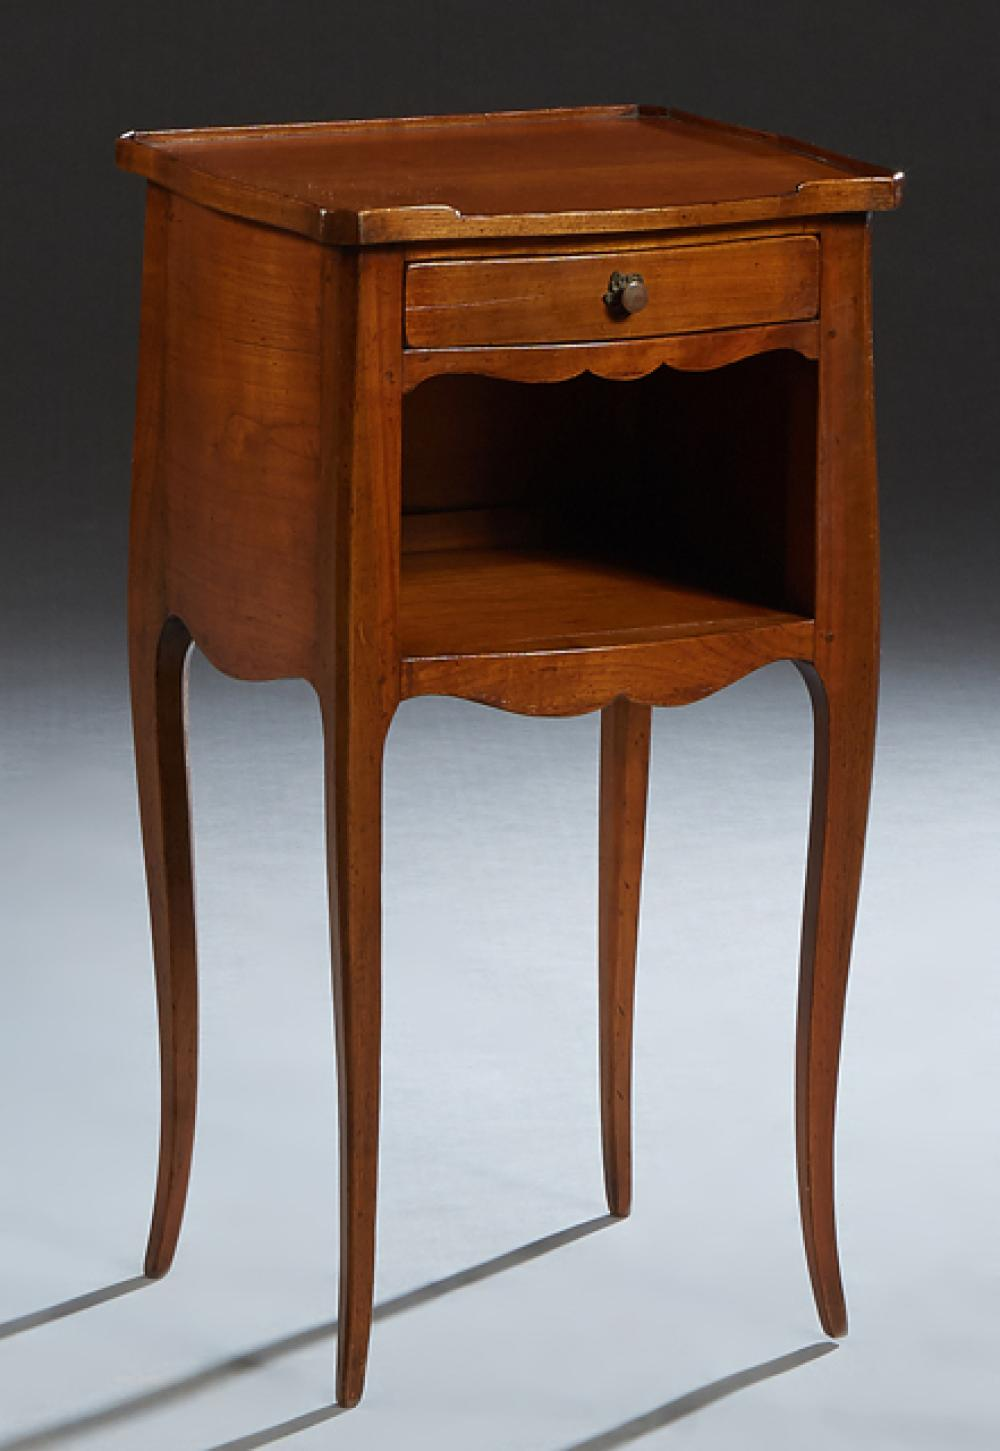 French Louis XV Style Carved Cherry Bowfront Nightstand, 20th c, the 3/4 galleried top over a frieze drawer and open storage, on squ...